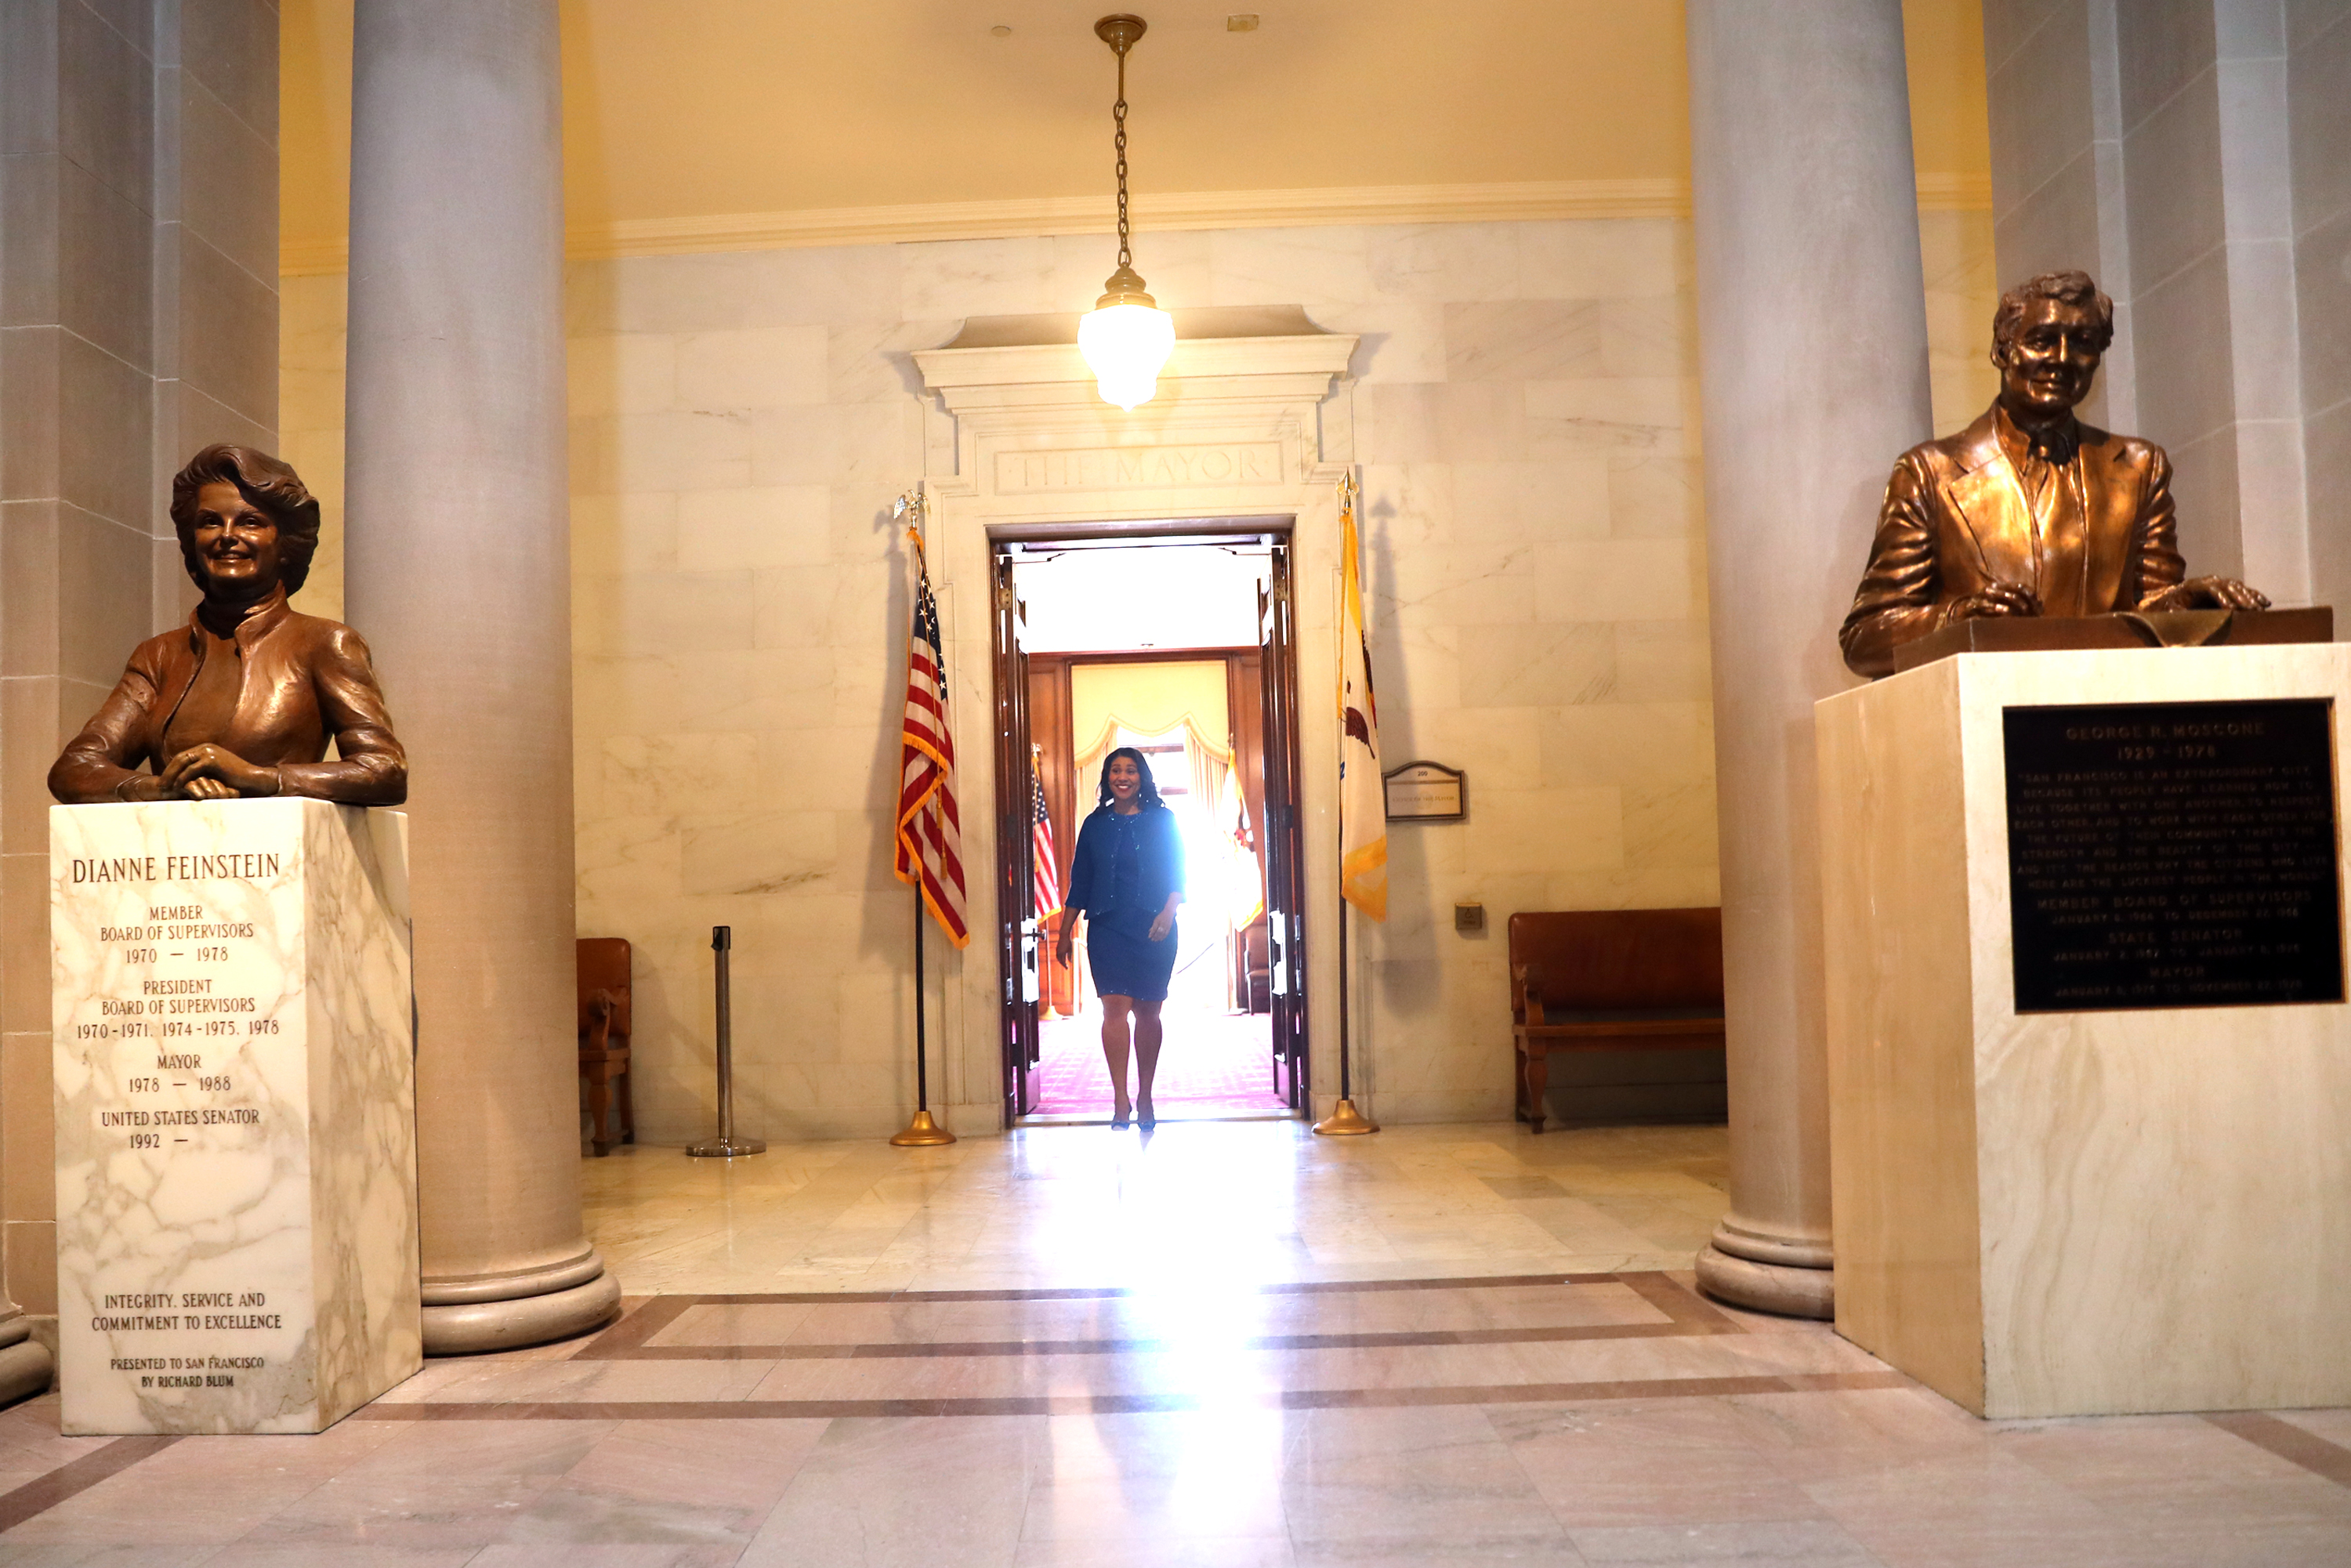 <div class='meta'><div class='origin-logo' data-origin='none'></div><span class='caption-text' data-credit='The Chronicle'>San Francisco Mayor London Breed leaves the Mayor's Office before her inauguration at City Hall in San Francisco, Calif. on Wednesday, July 11, 2018.</span></div>